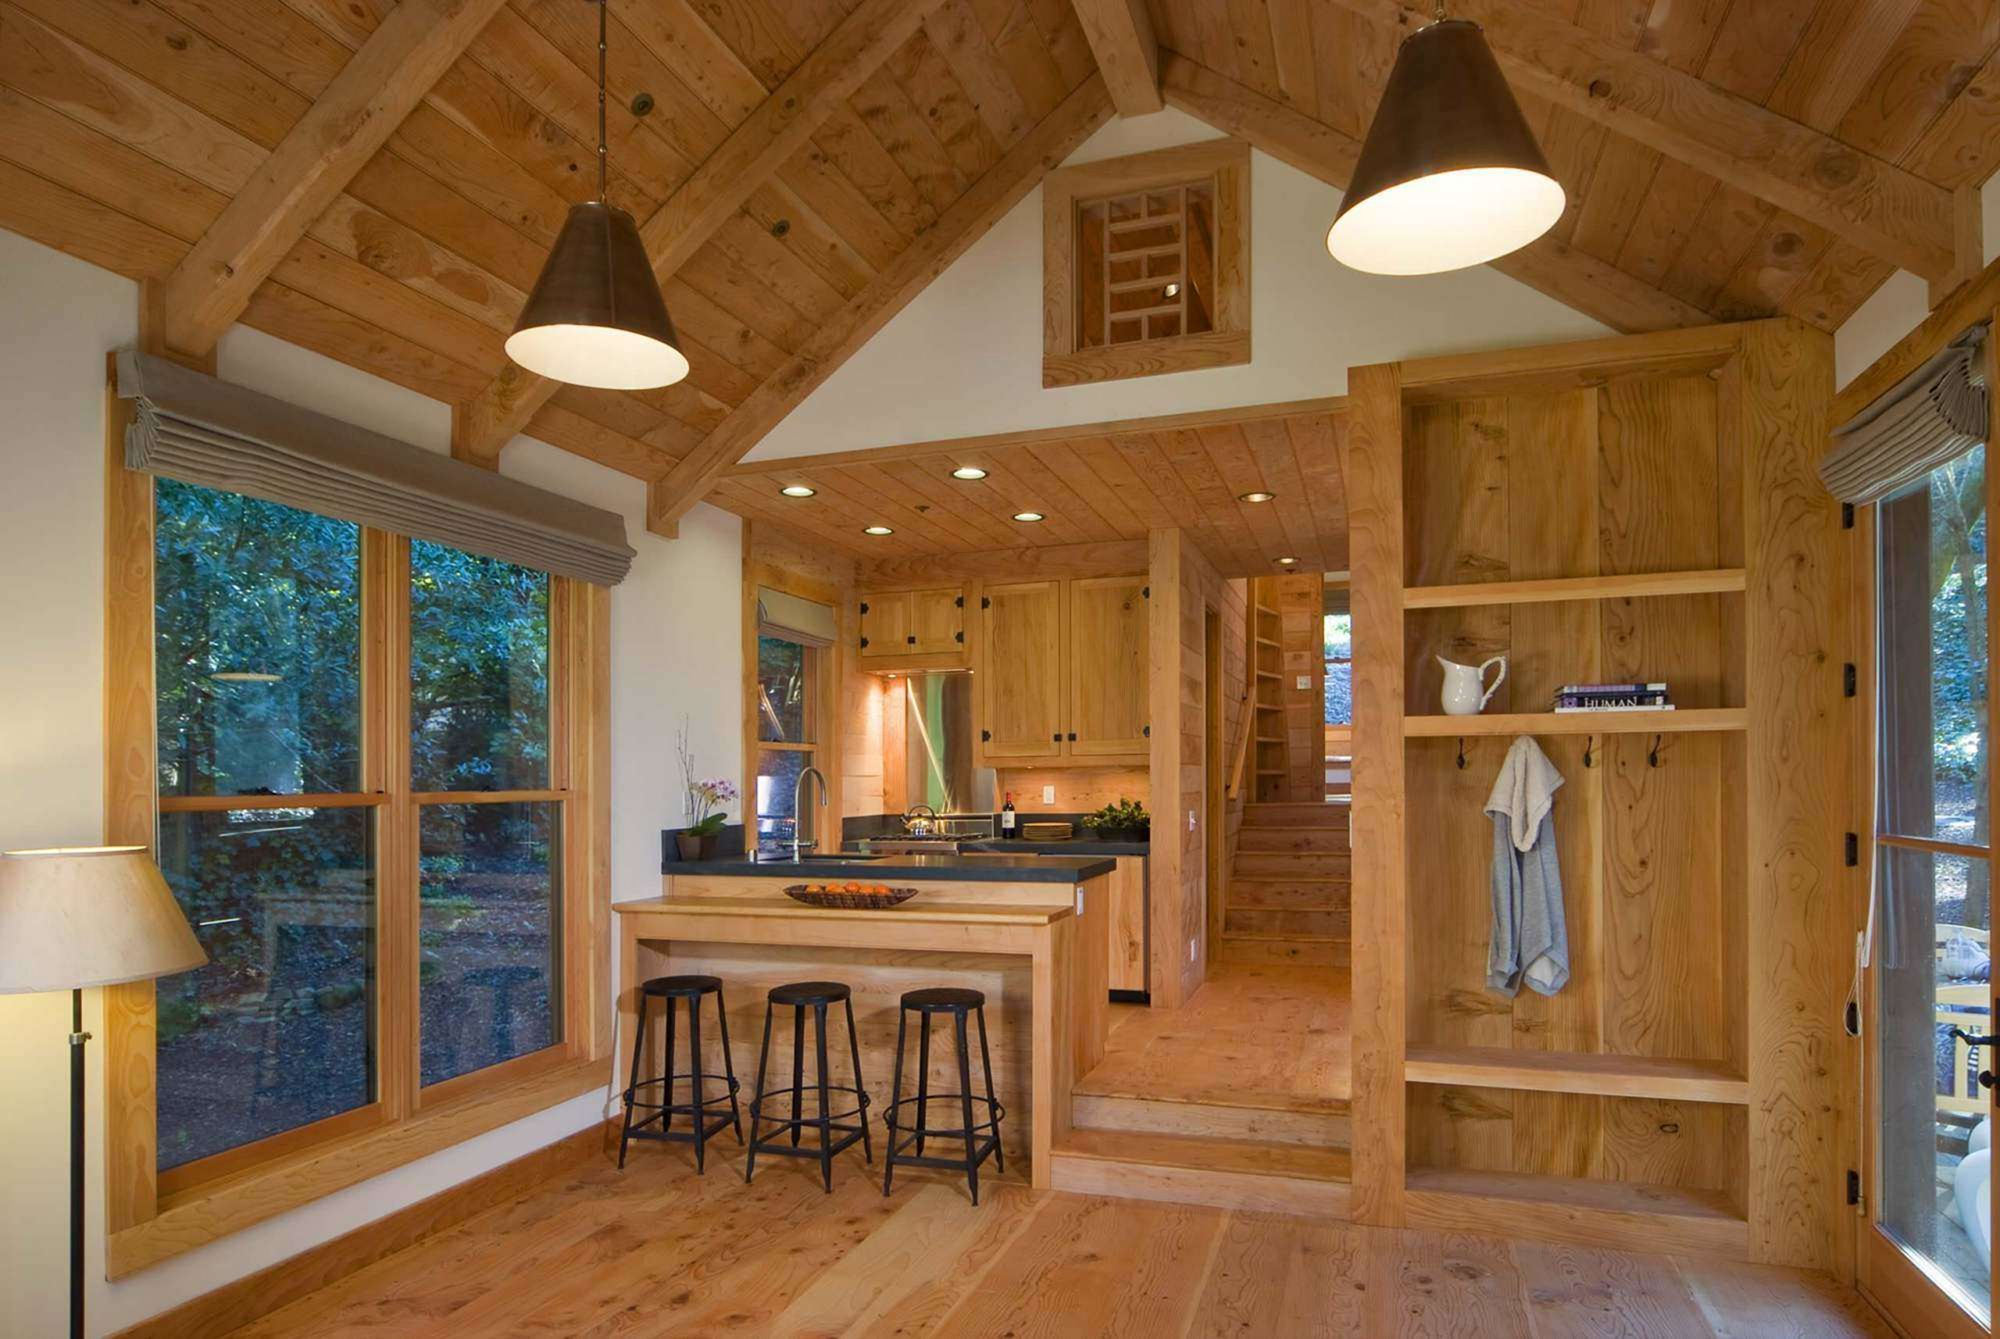 Wicked 25+ Wonderful Rustic Tiny House Ideas That You Need